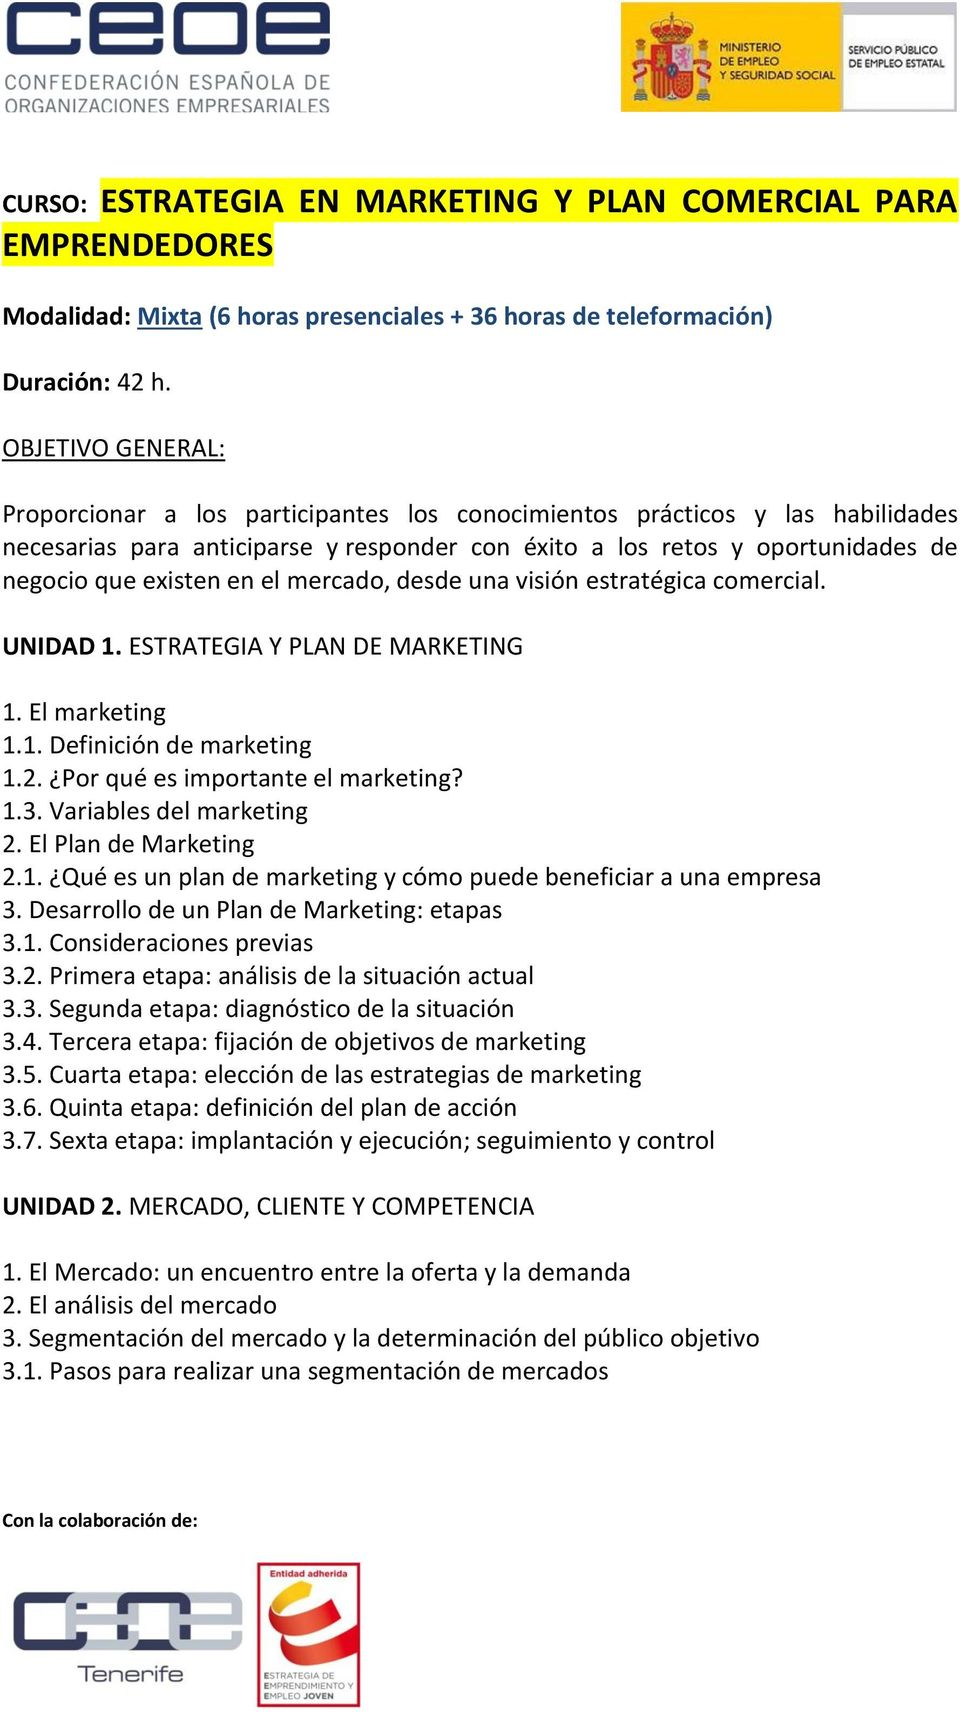 en el mercado, desde una visión estratégica comercial. UNIDAD 1. ESTRATEGIA Y PLAN DE MARKETING 1. El marketing 1.1. Definición de marketing 1.2. Por qué es importante el marketing? 1.3.